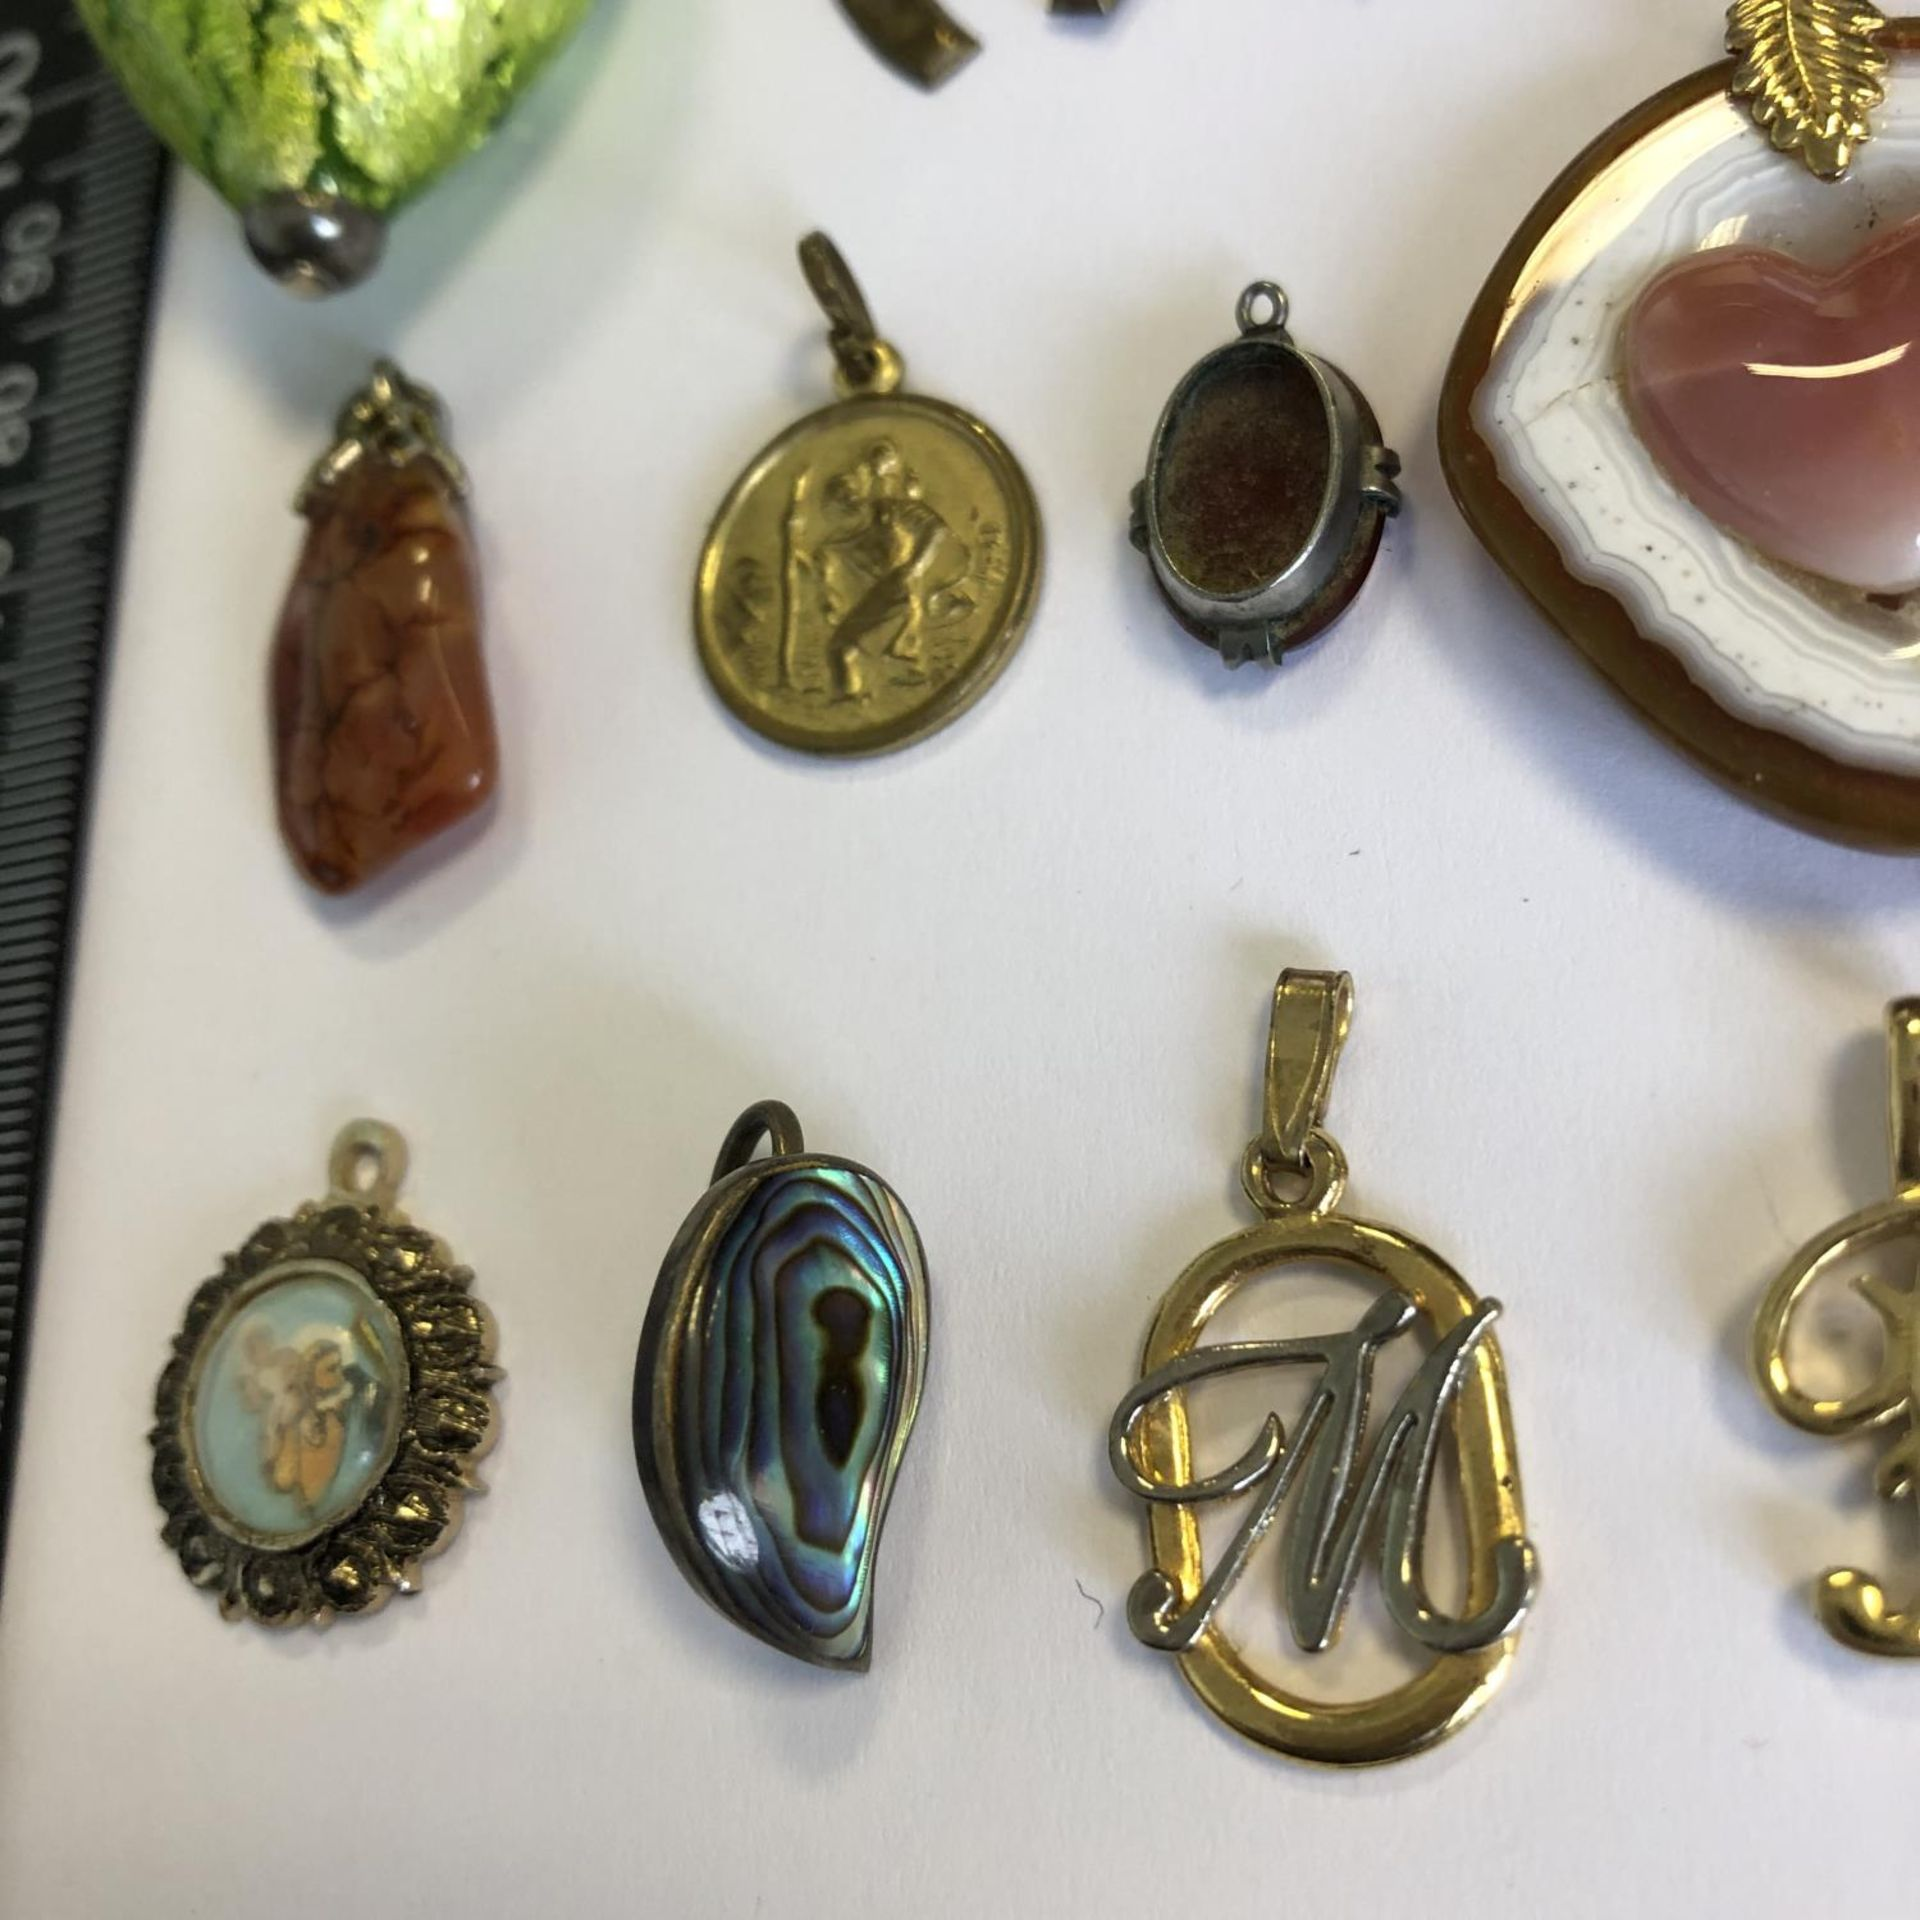 Lot 28 - A group of vintage costume jewellery pendants - (15) - No reserve